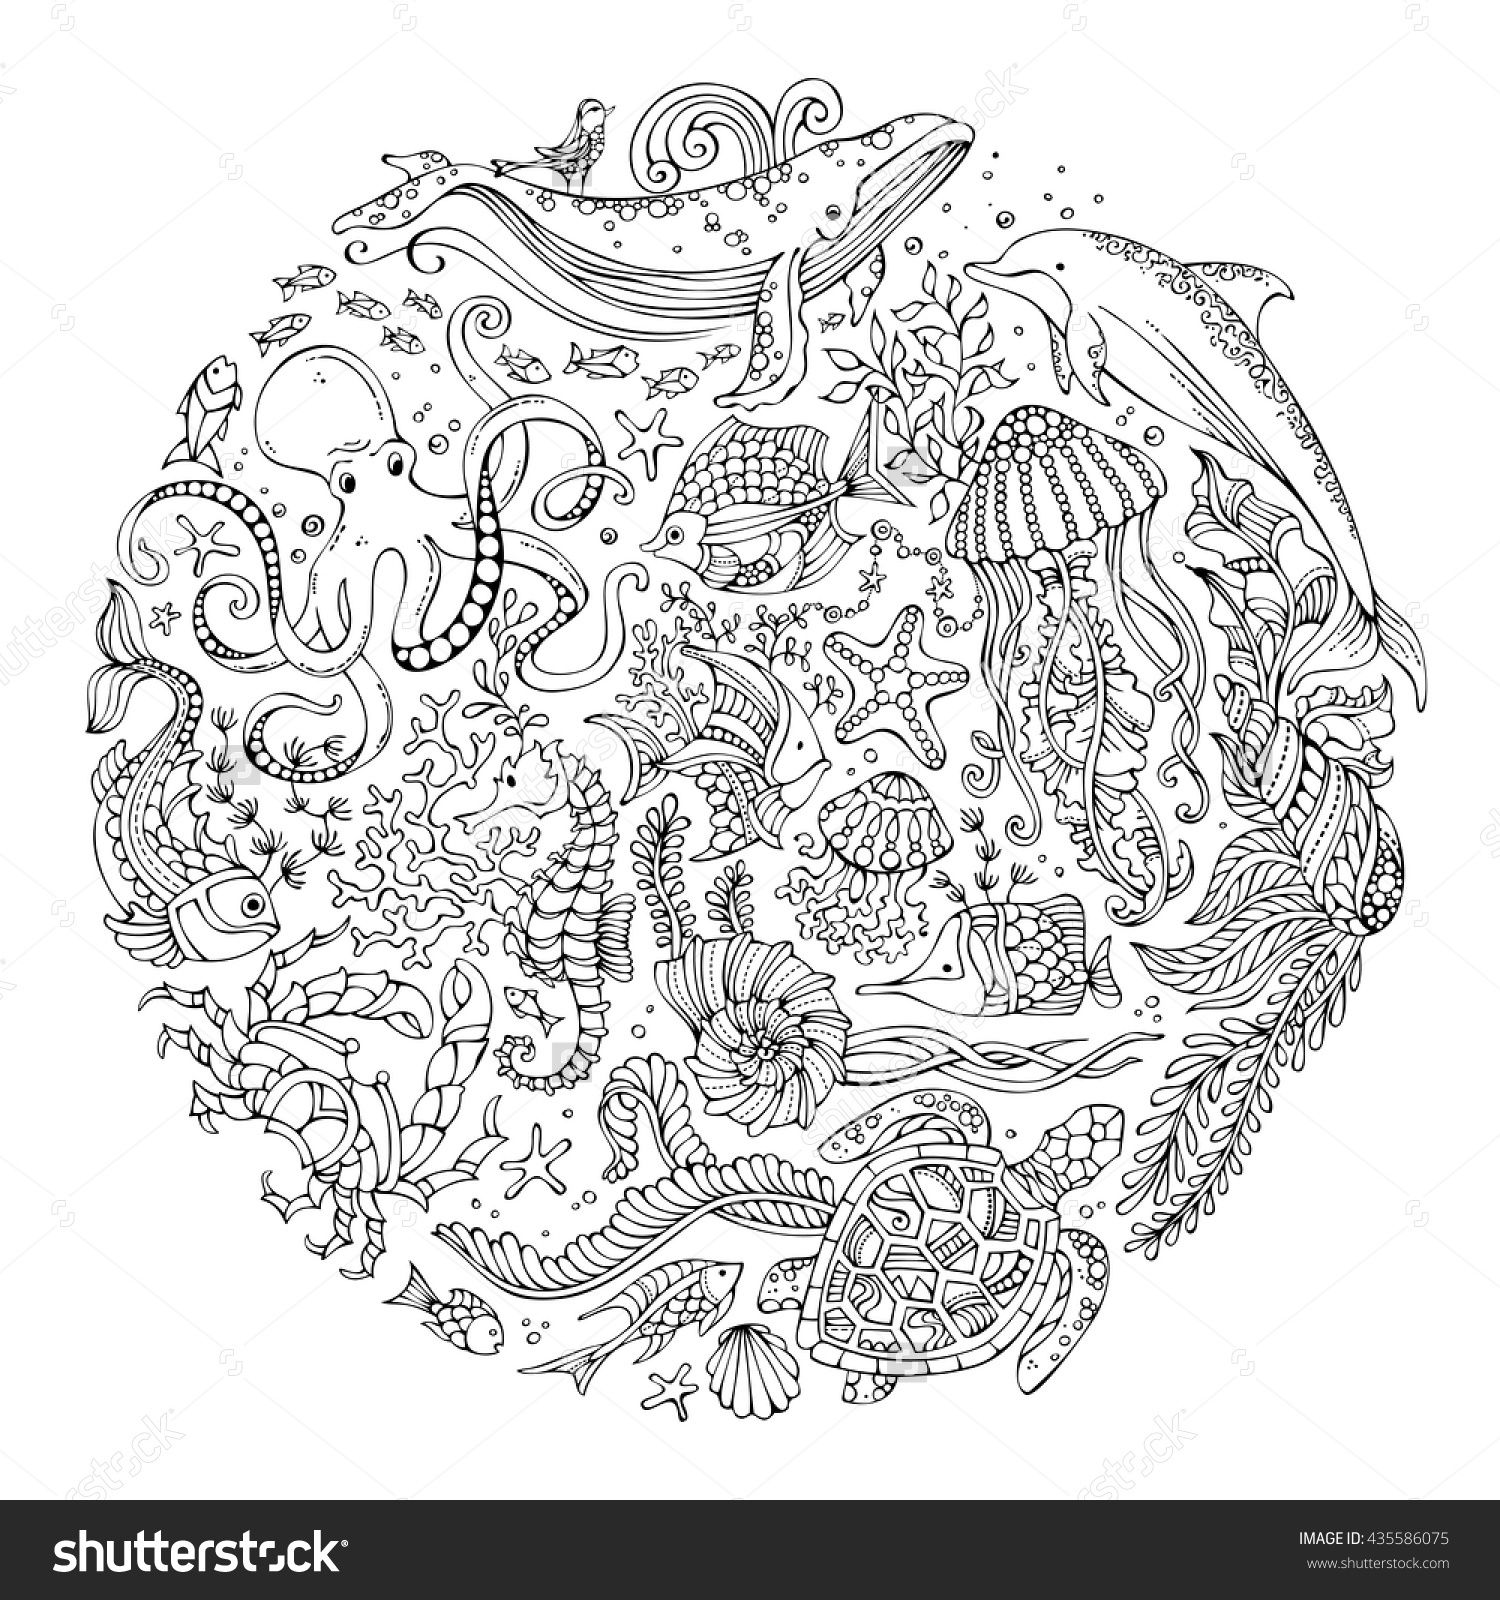 Circle Vector Set Of Doodles Wild Sealife Contours Of Whale Dolphin Turtle Fish Starfish Crab Coloring Books Mandala Coloring Pages Fall Coloring Pages